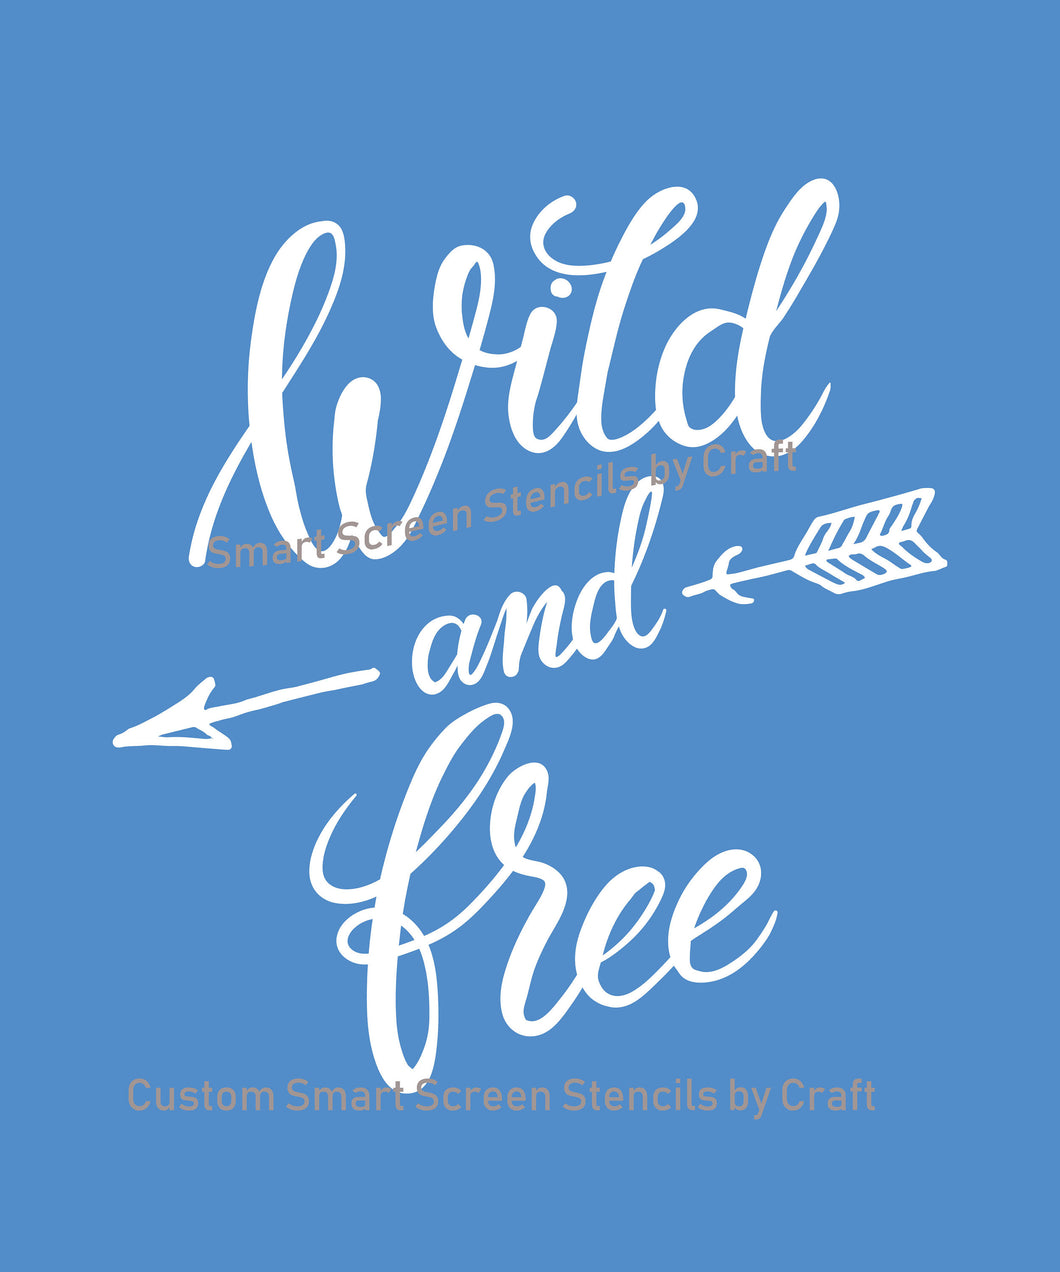 Bohemian Wild and Free SilkScreen Stencil - Reusable, Craft - Canvas, Cards, Glass, Ceramic, Walls, Fabric, Wood, Metal Tote-bags, T-shirts